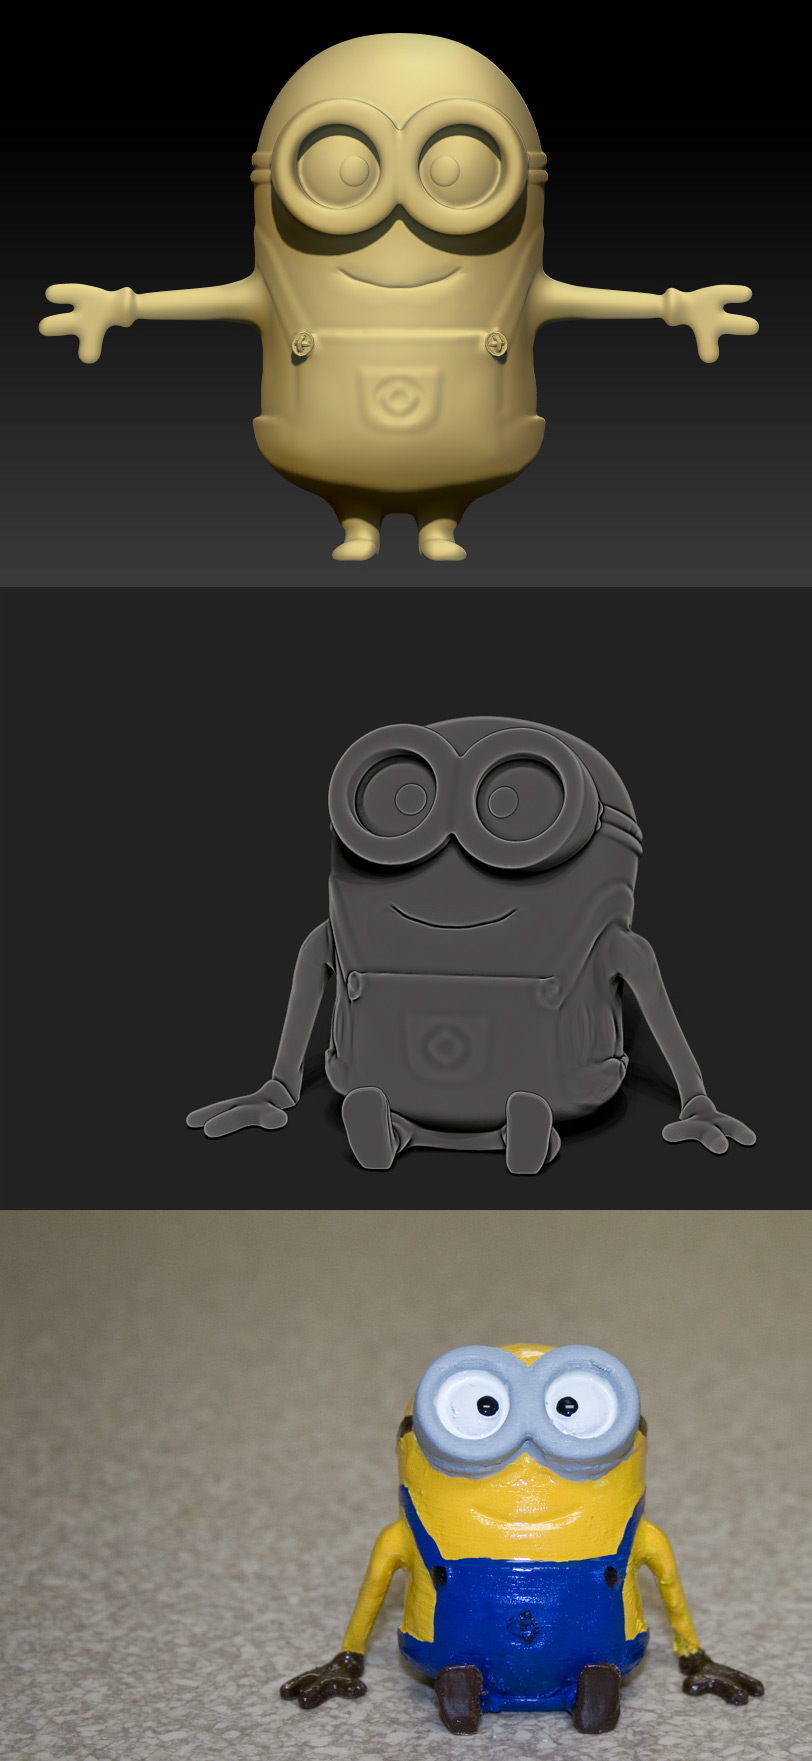 Printed 'Despicable Me' Minion by UnexpectedToy